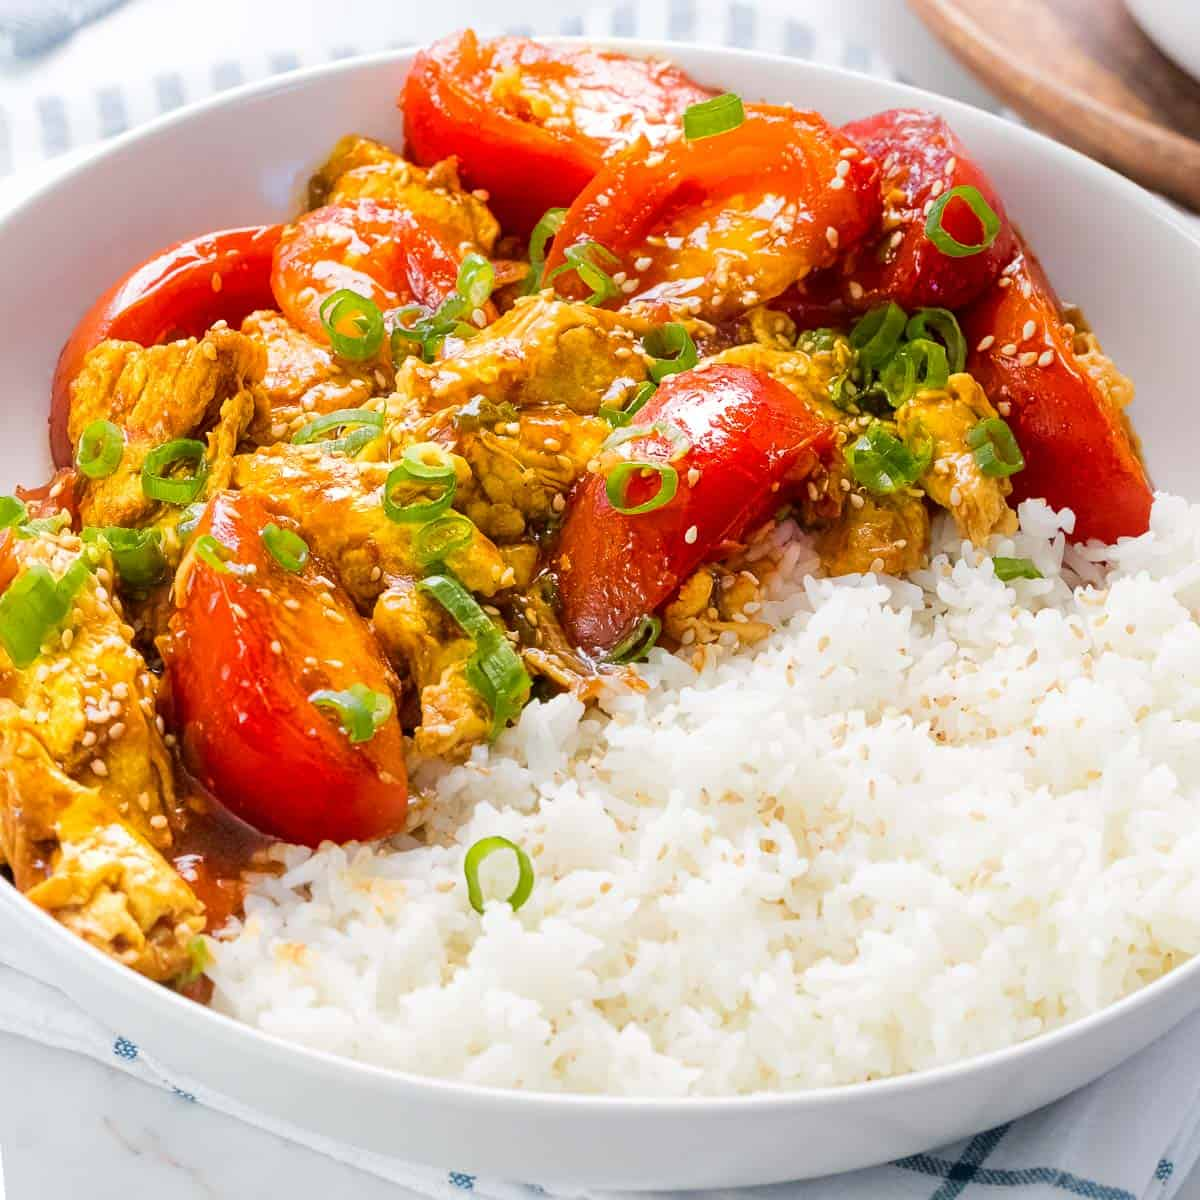 Chinese tomato egg stir fry in a bowl of rice.